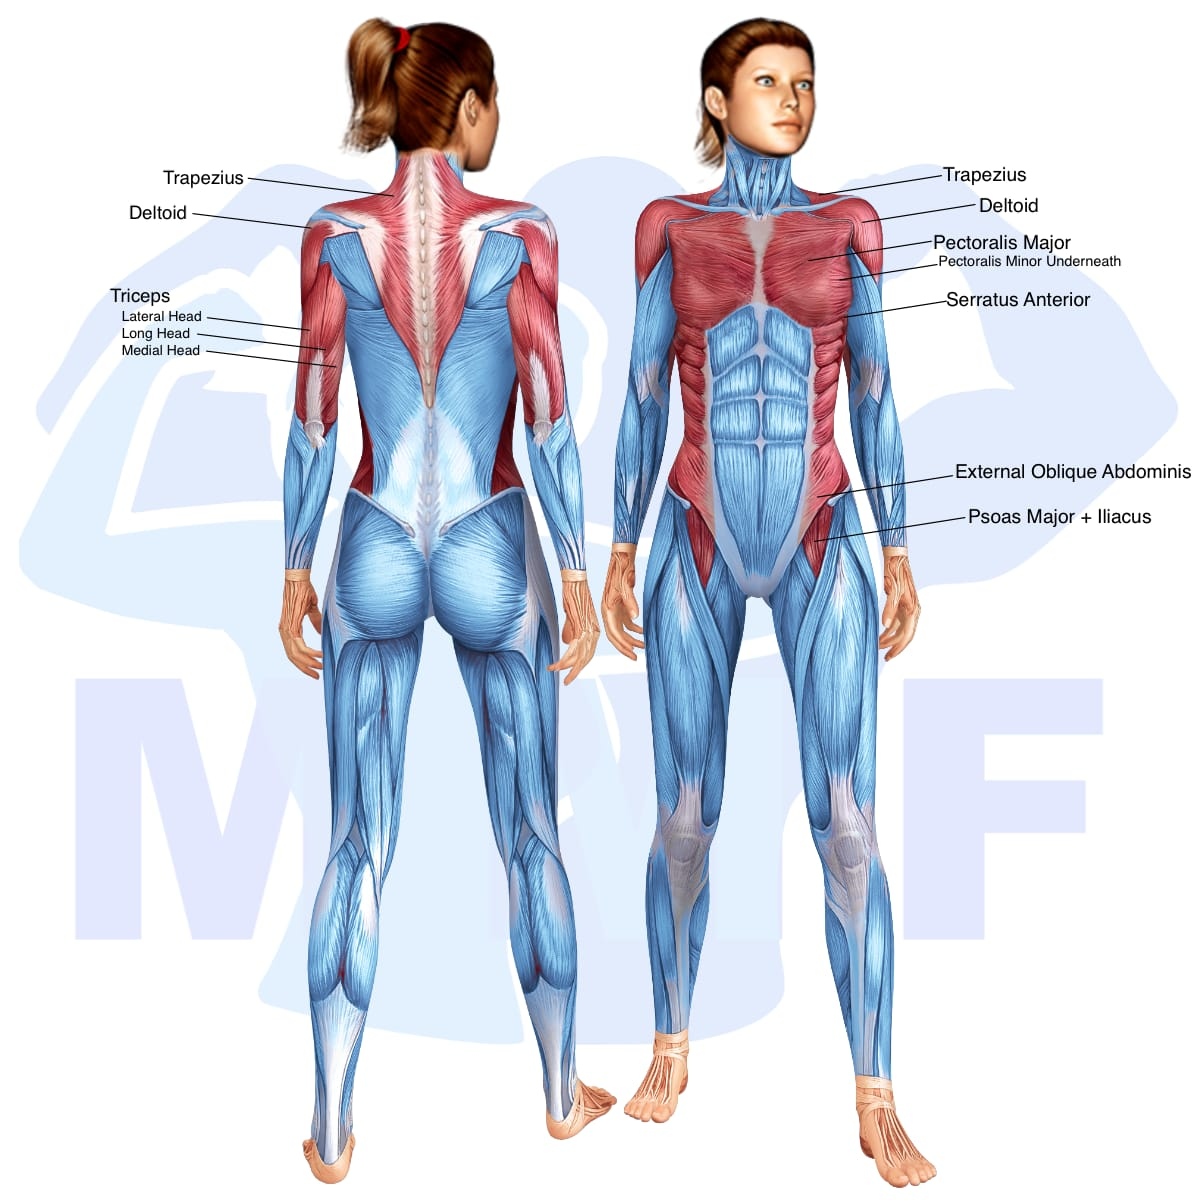 Skeletal muscle systems for a muscular woman, with muscles highlighted in red that are use during resistance band one arm shoulder press.